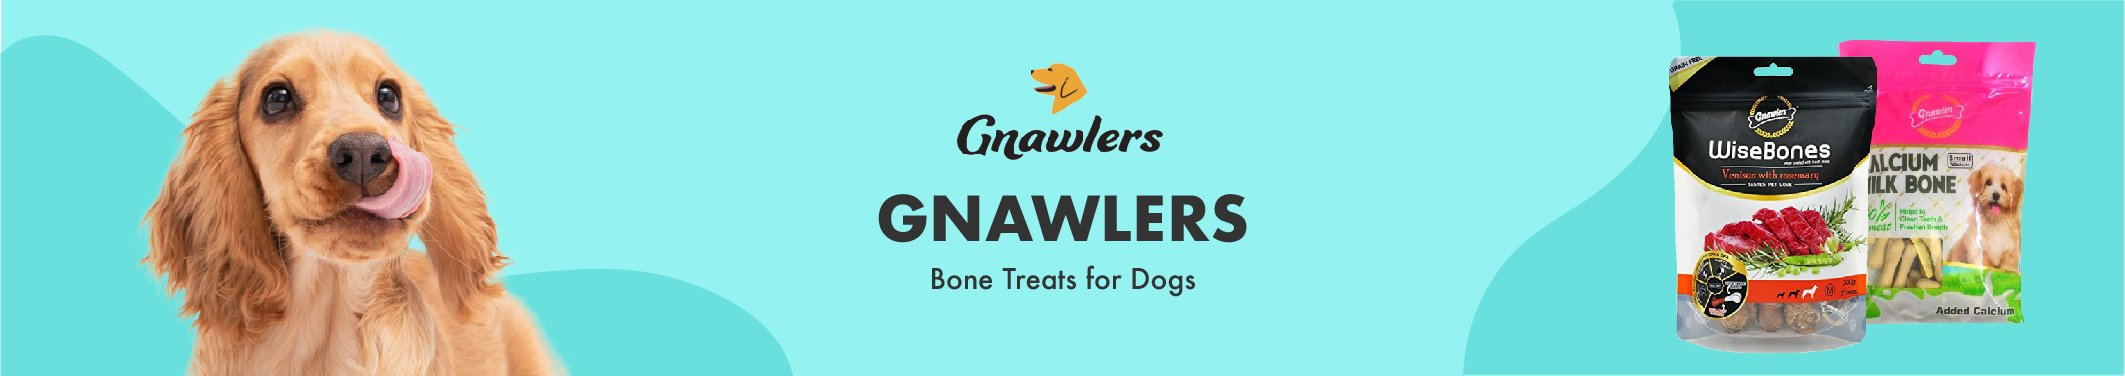 Gnawlers Bone Treats for Dogs